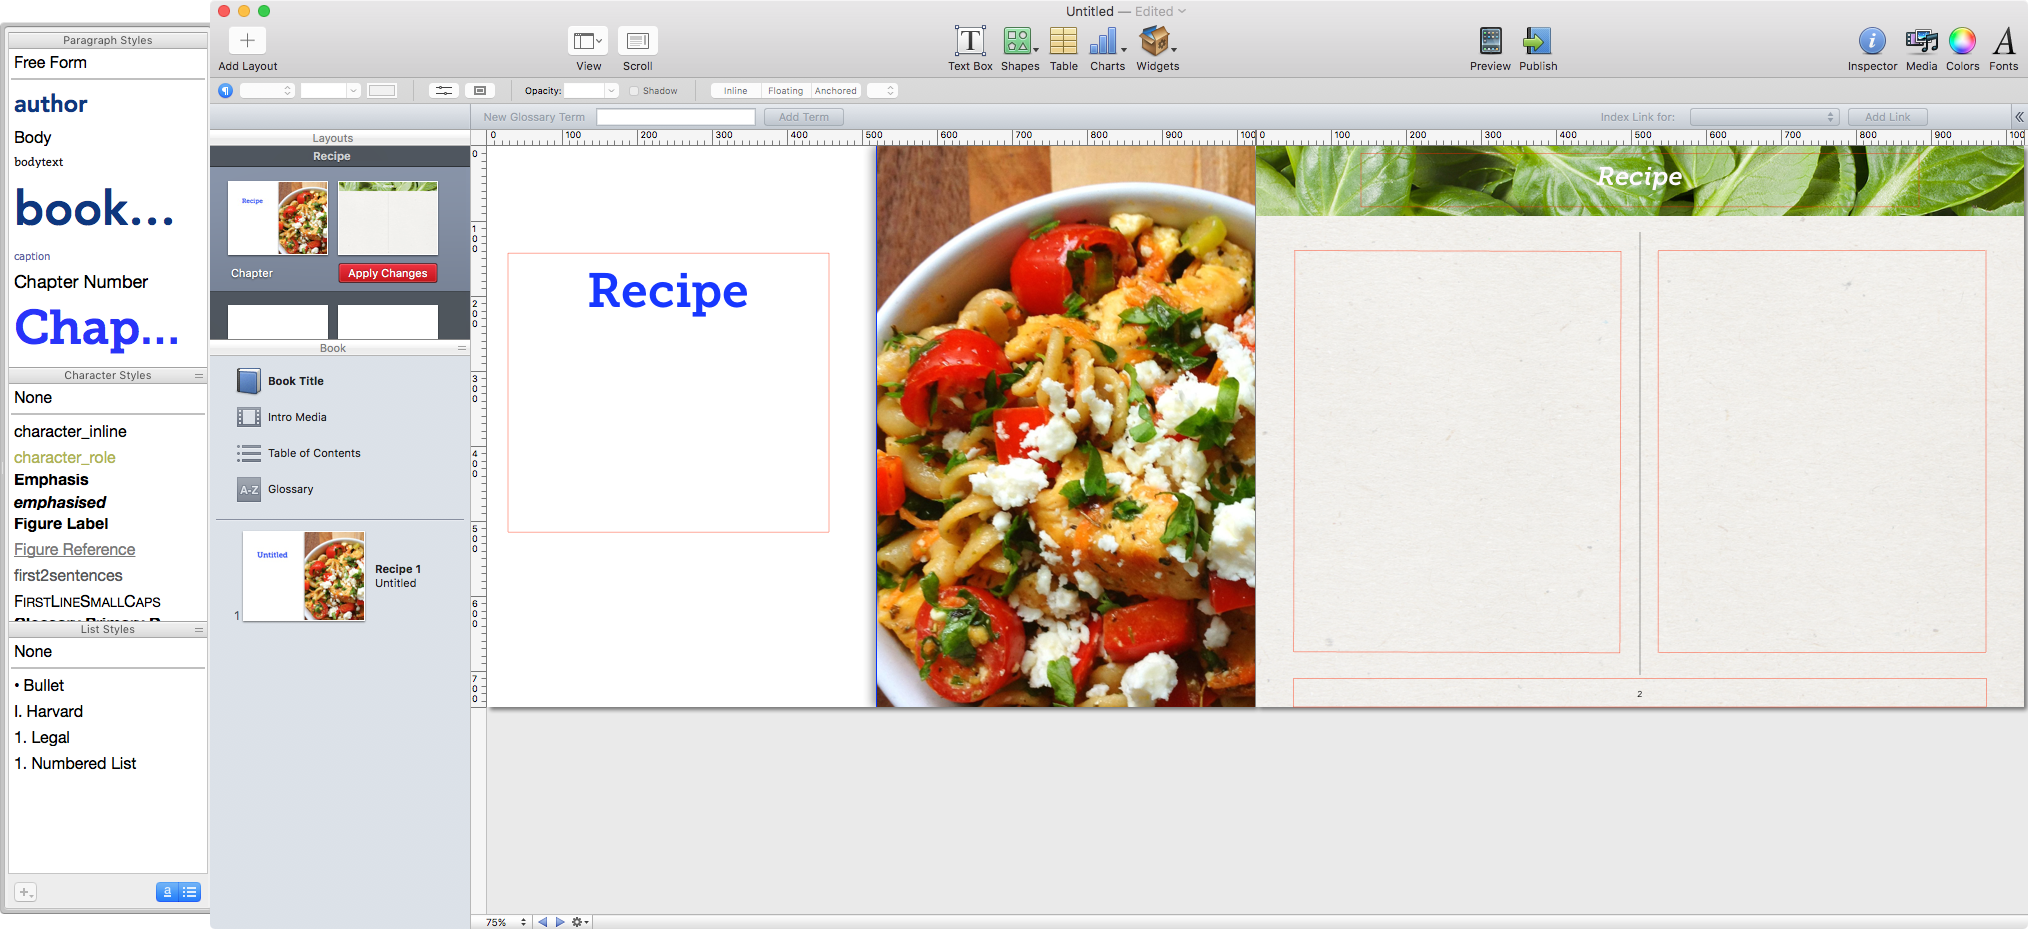 The image here shows that the name of `Chapter` has been changed to `Recipe`.